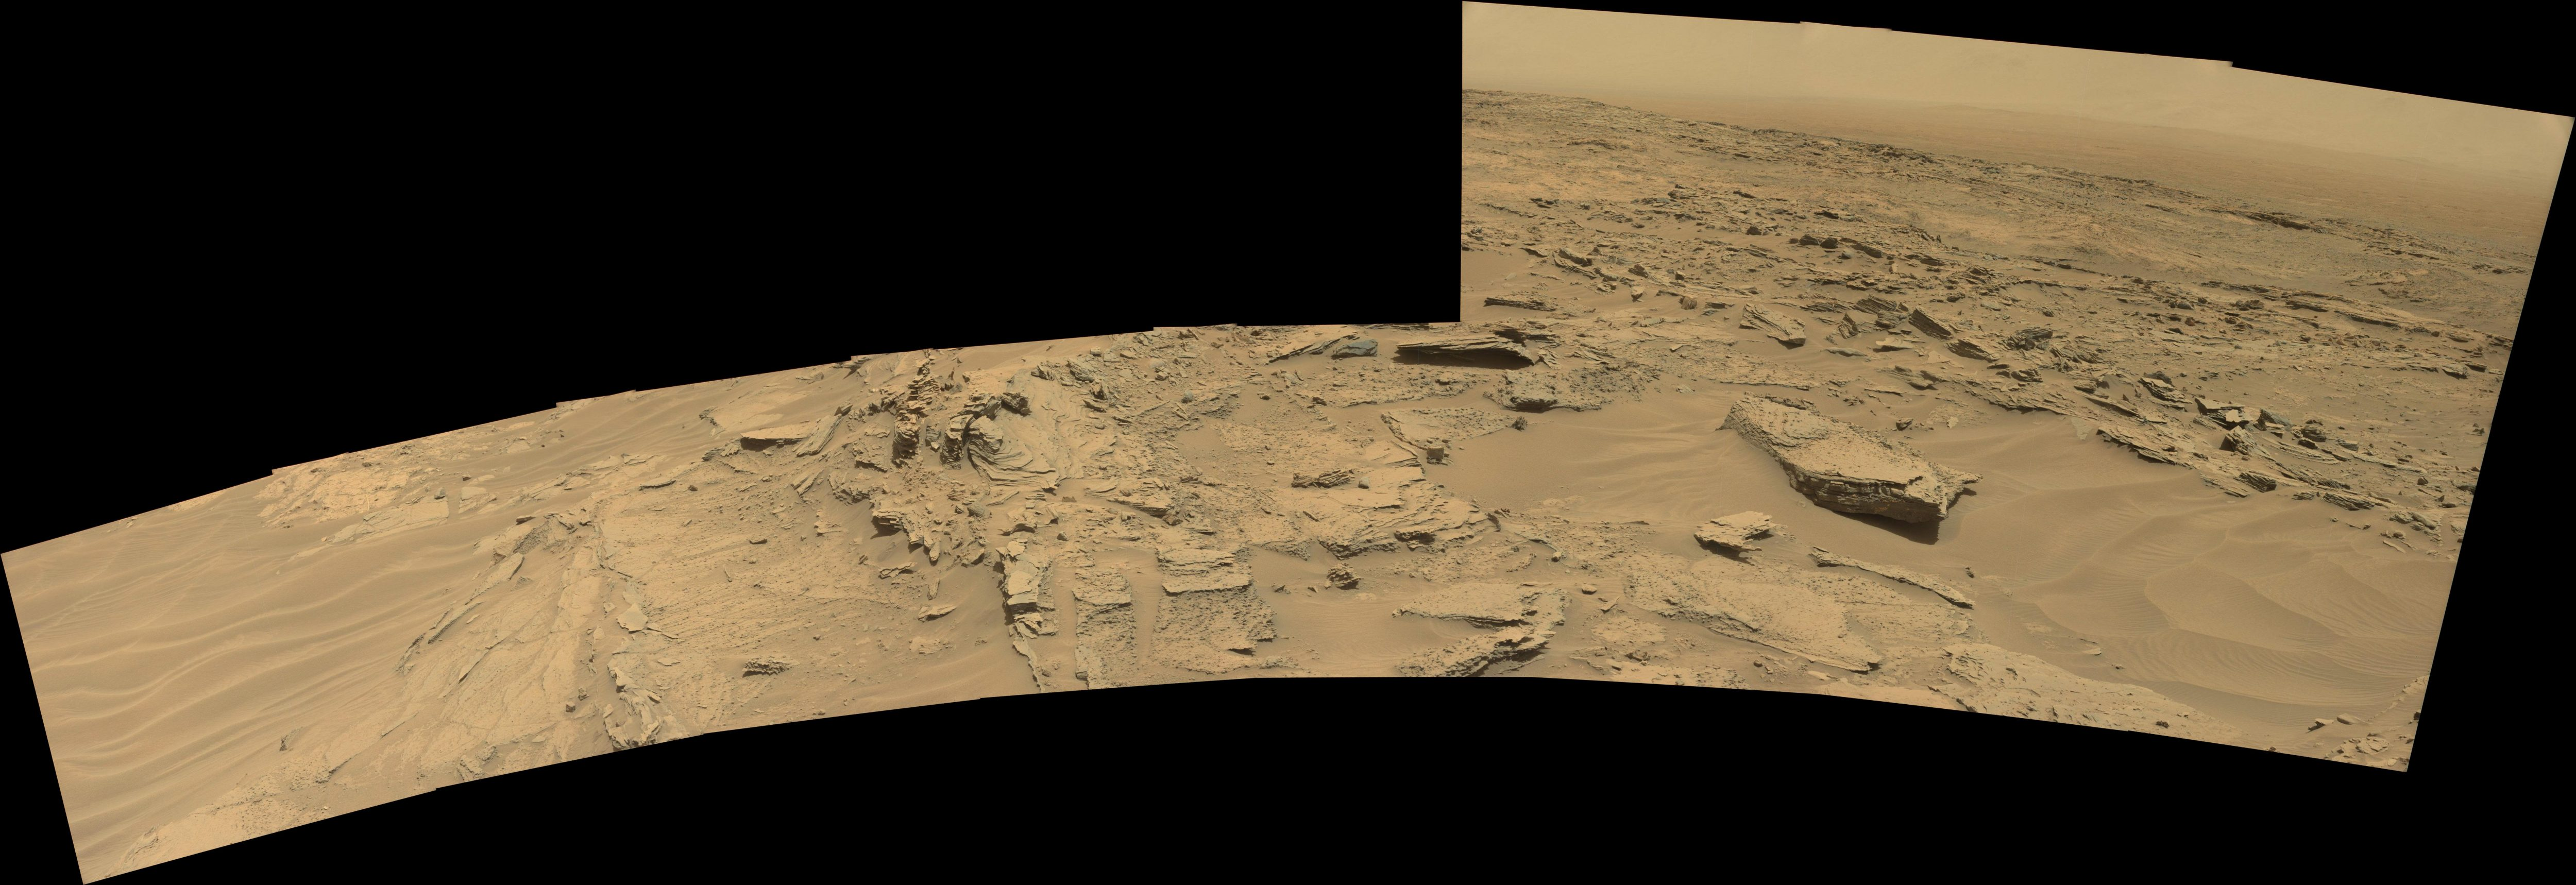 panoramic curiosity rover view 3 - sol 1352 - was life on mars